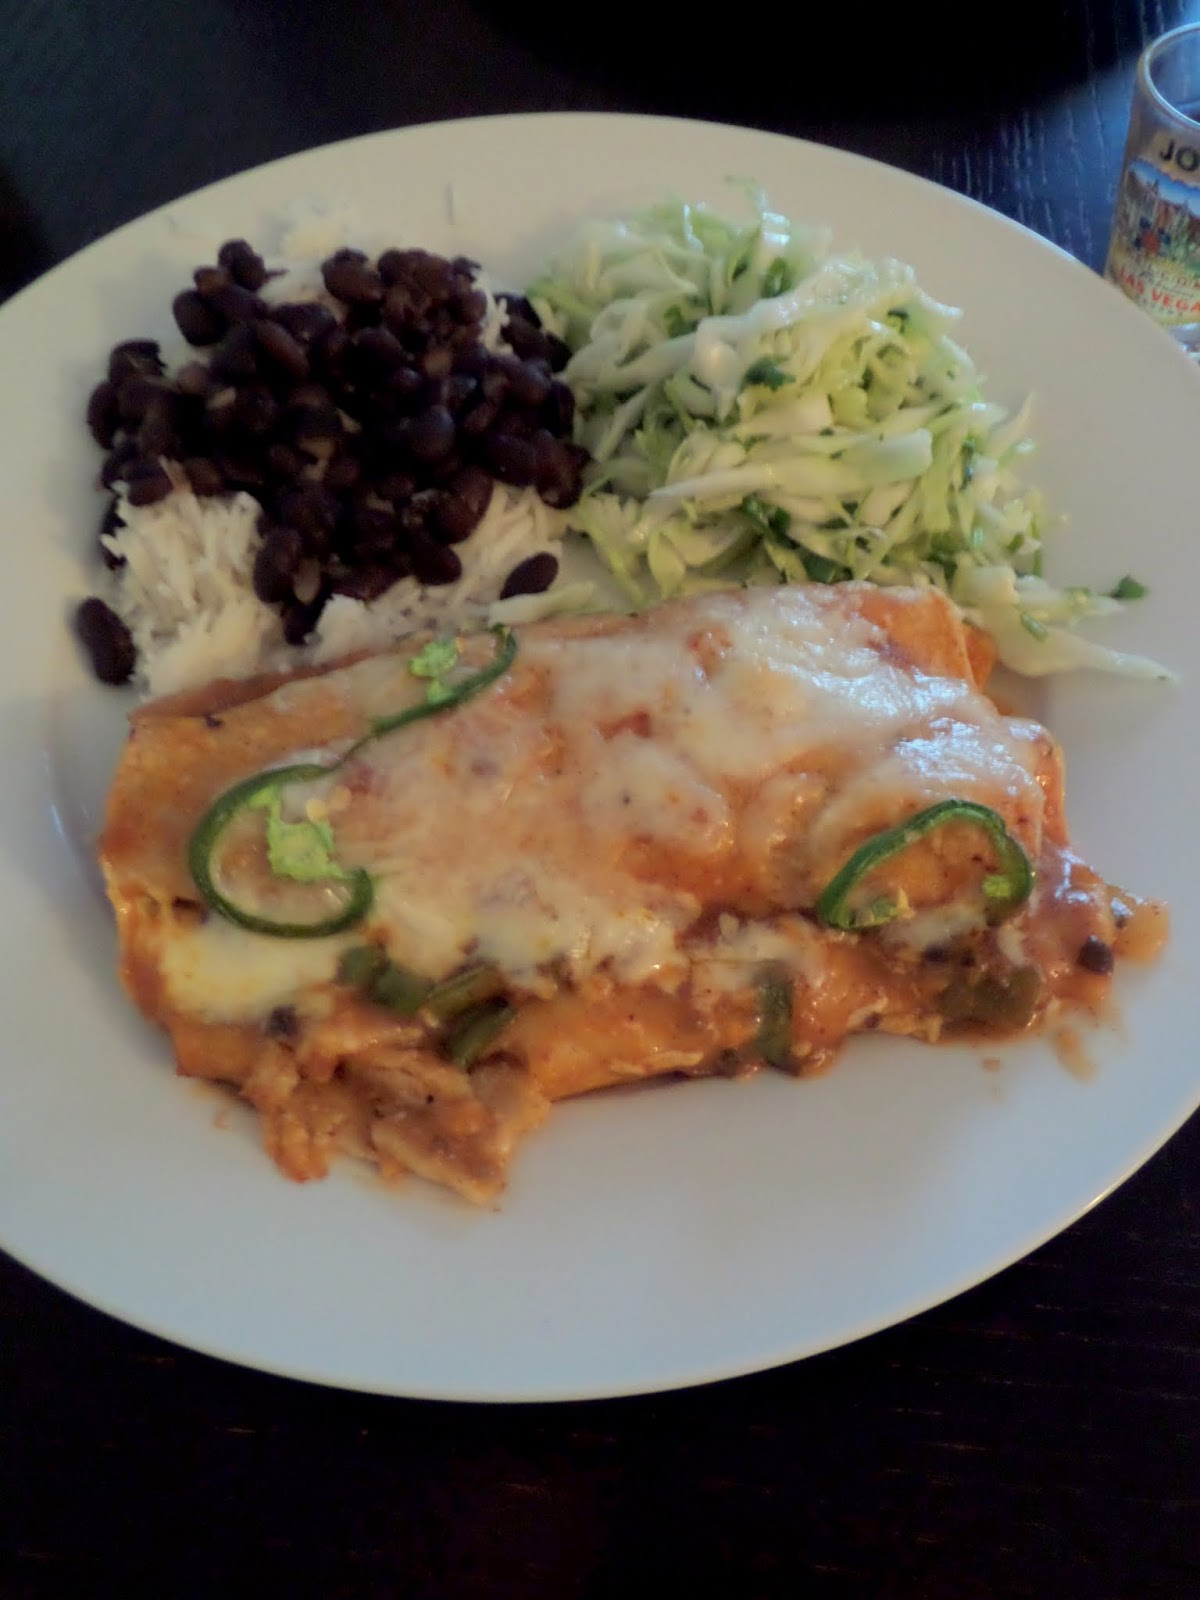 Chicken Enchiladas:  Corn tortillas rolled with chicken and cheese then smothered and baked in a chili sauce.